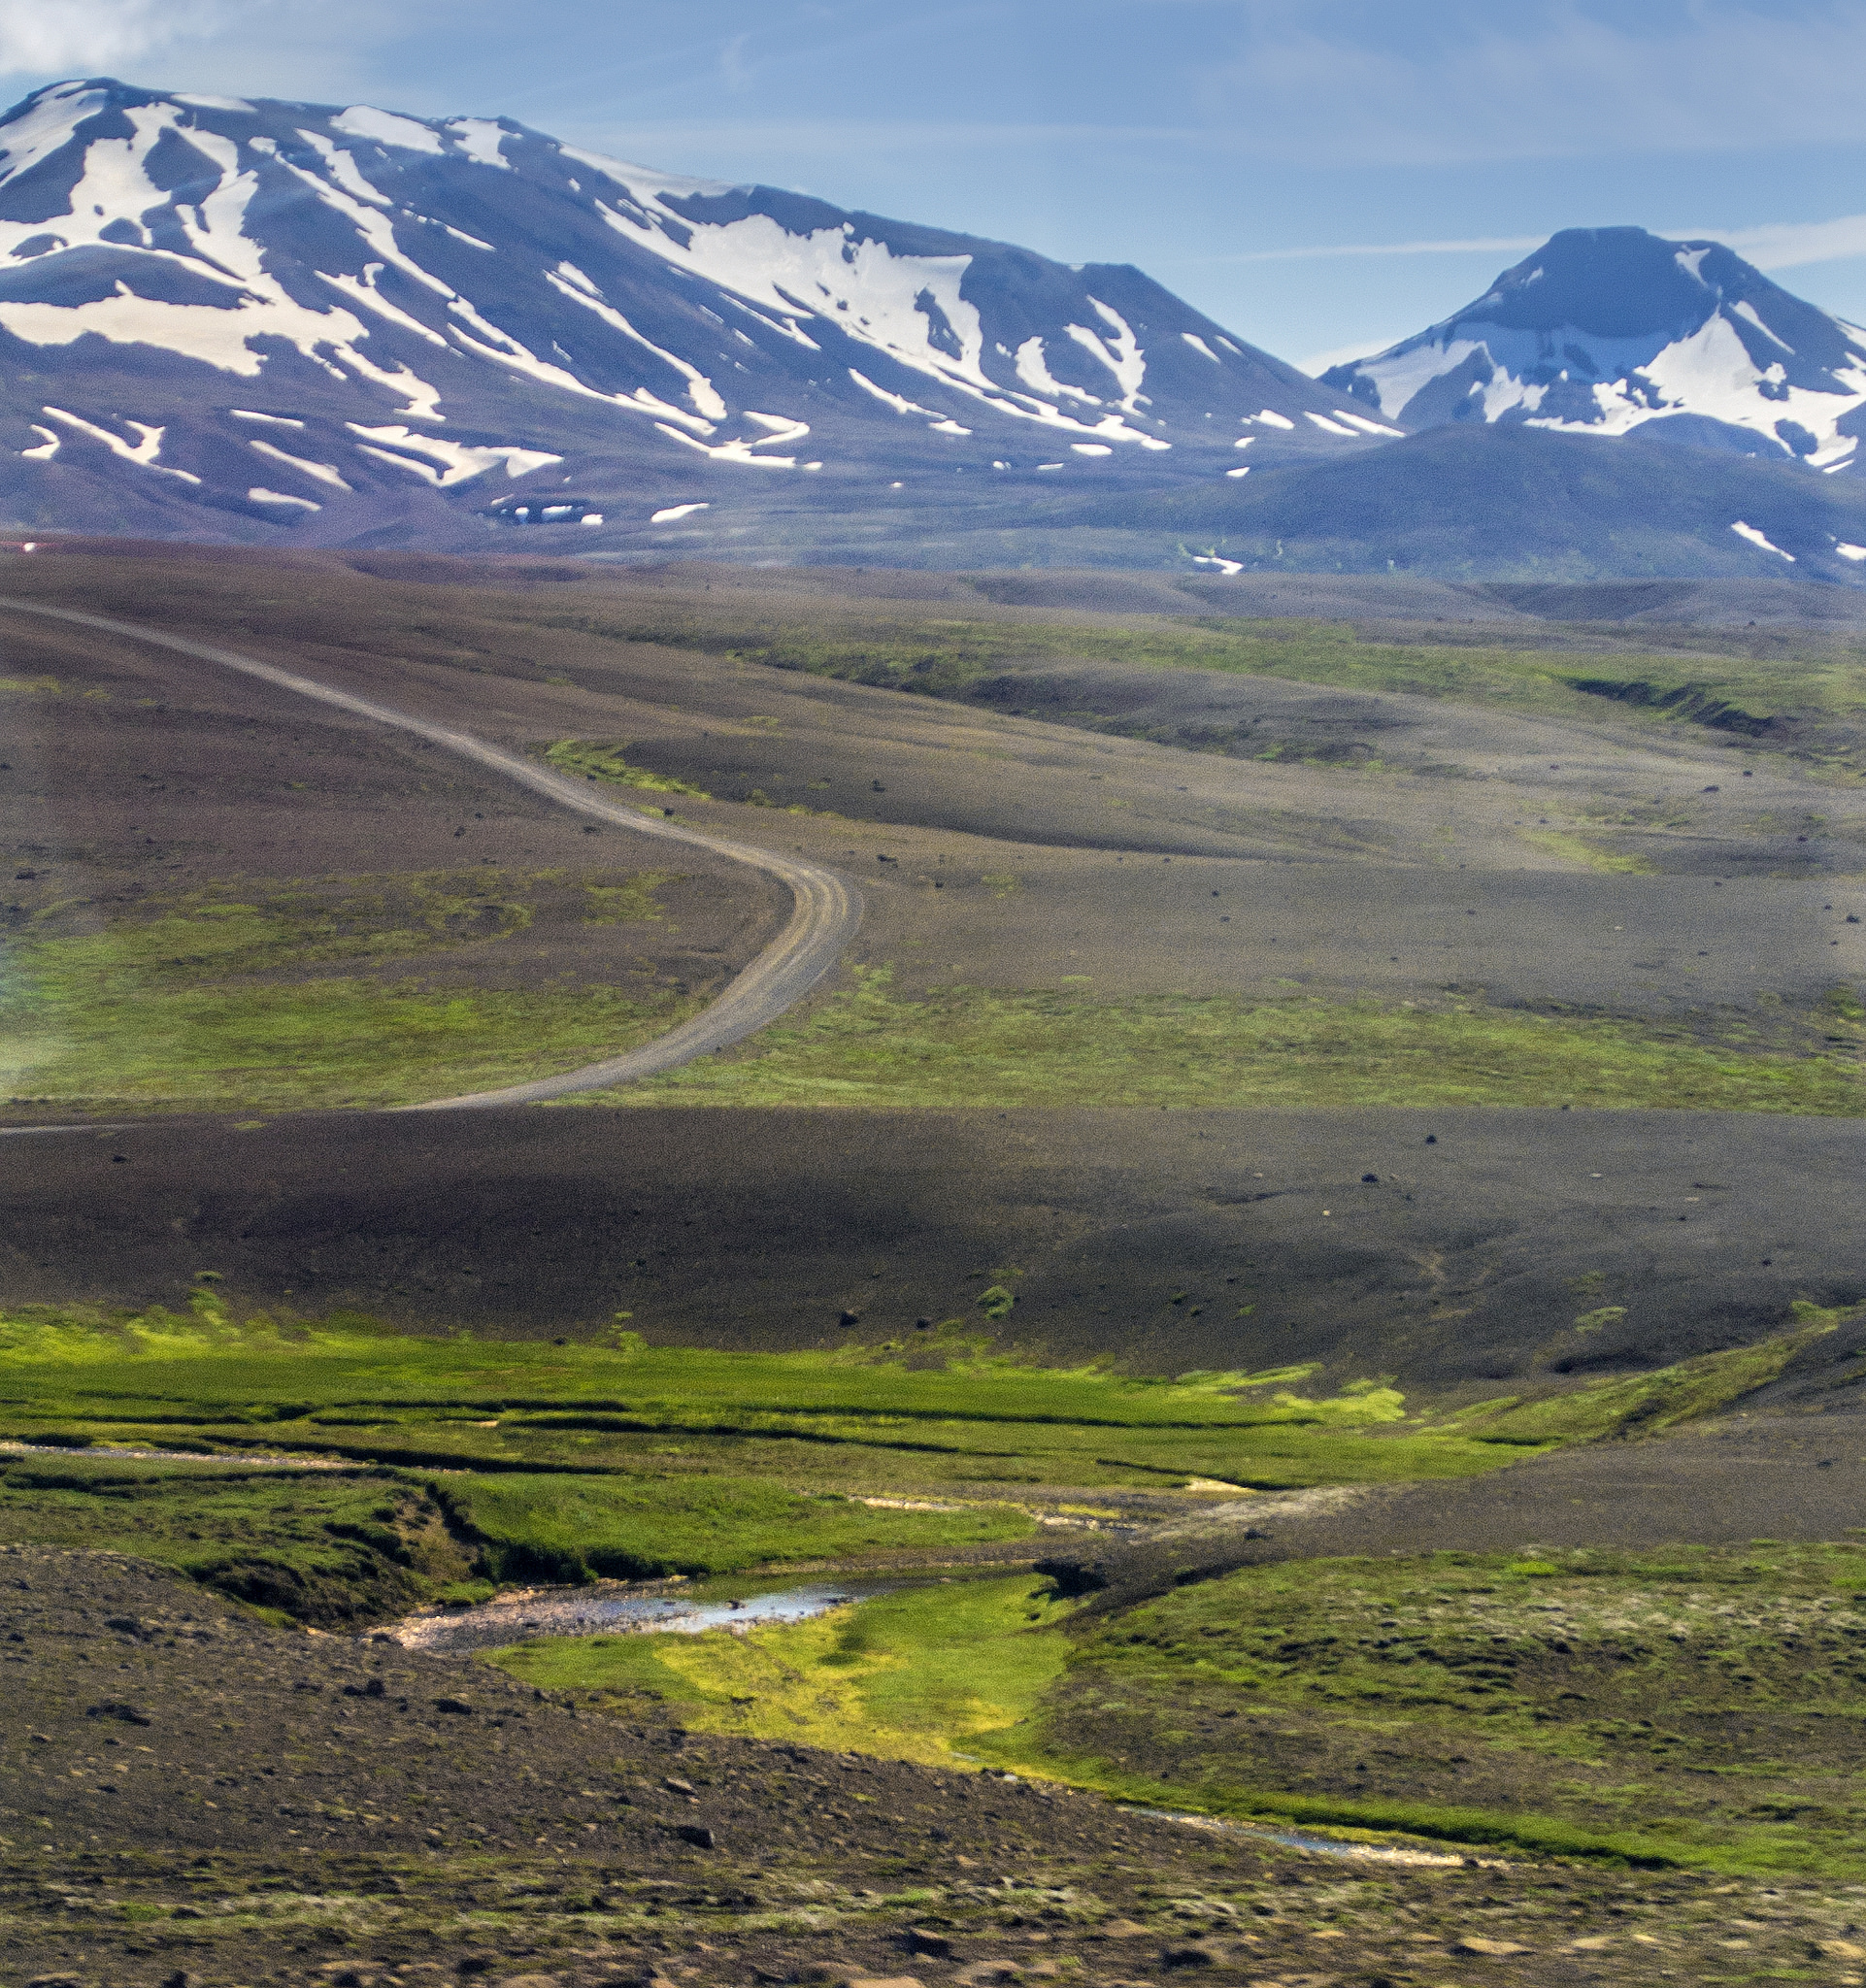 Photo: Icelandic Highlands. mariejirousek/Flickr.